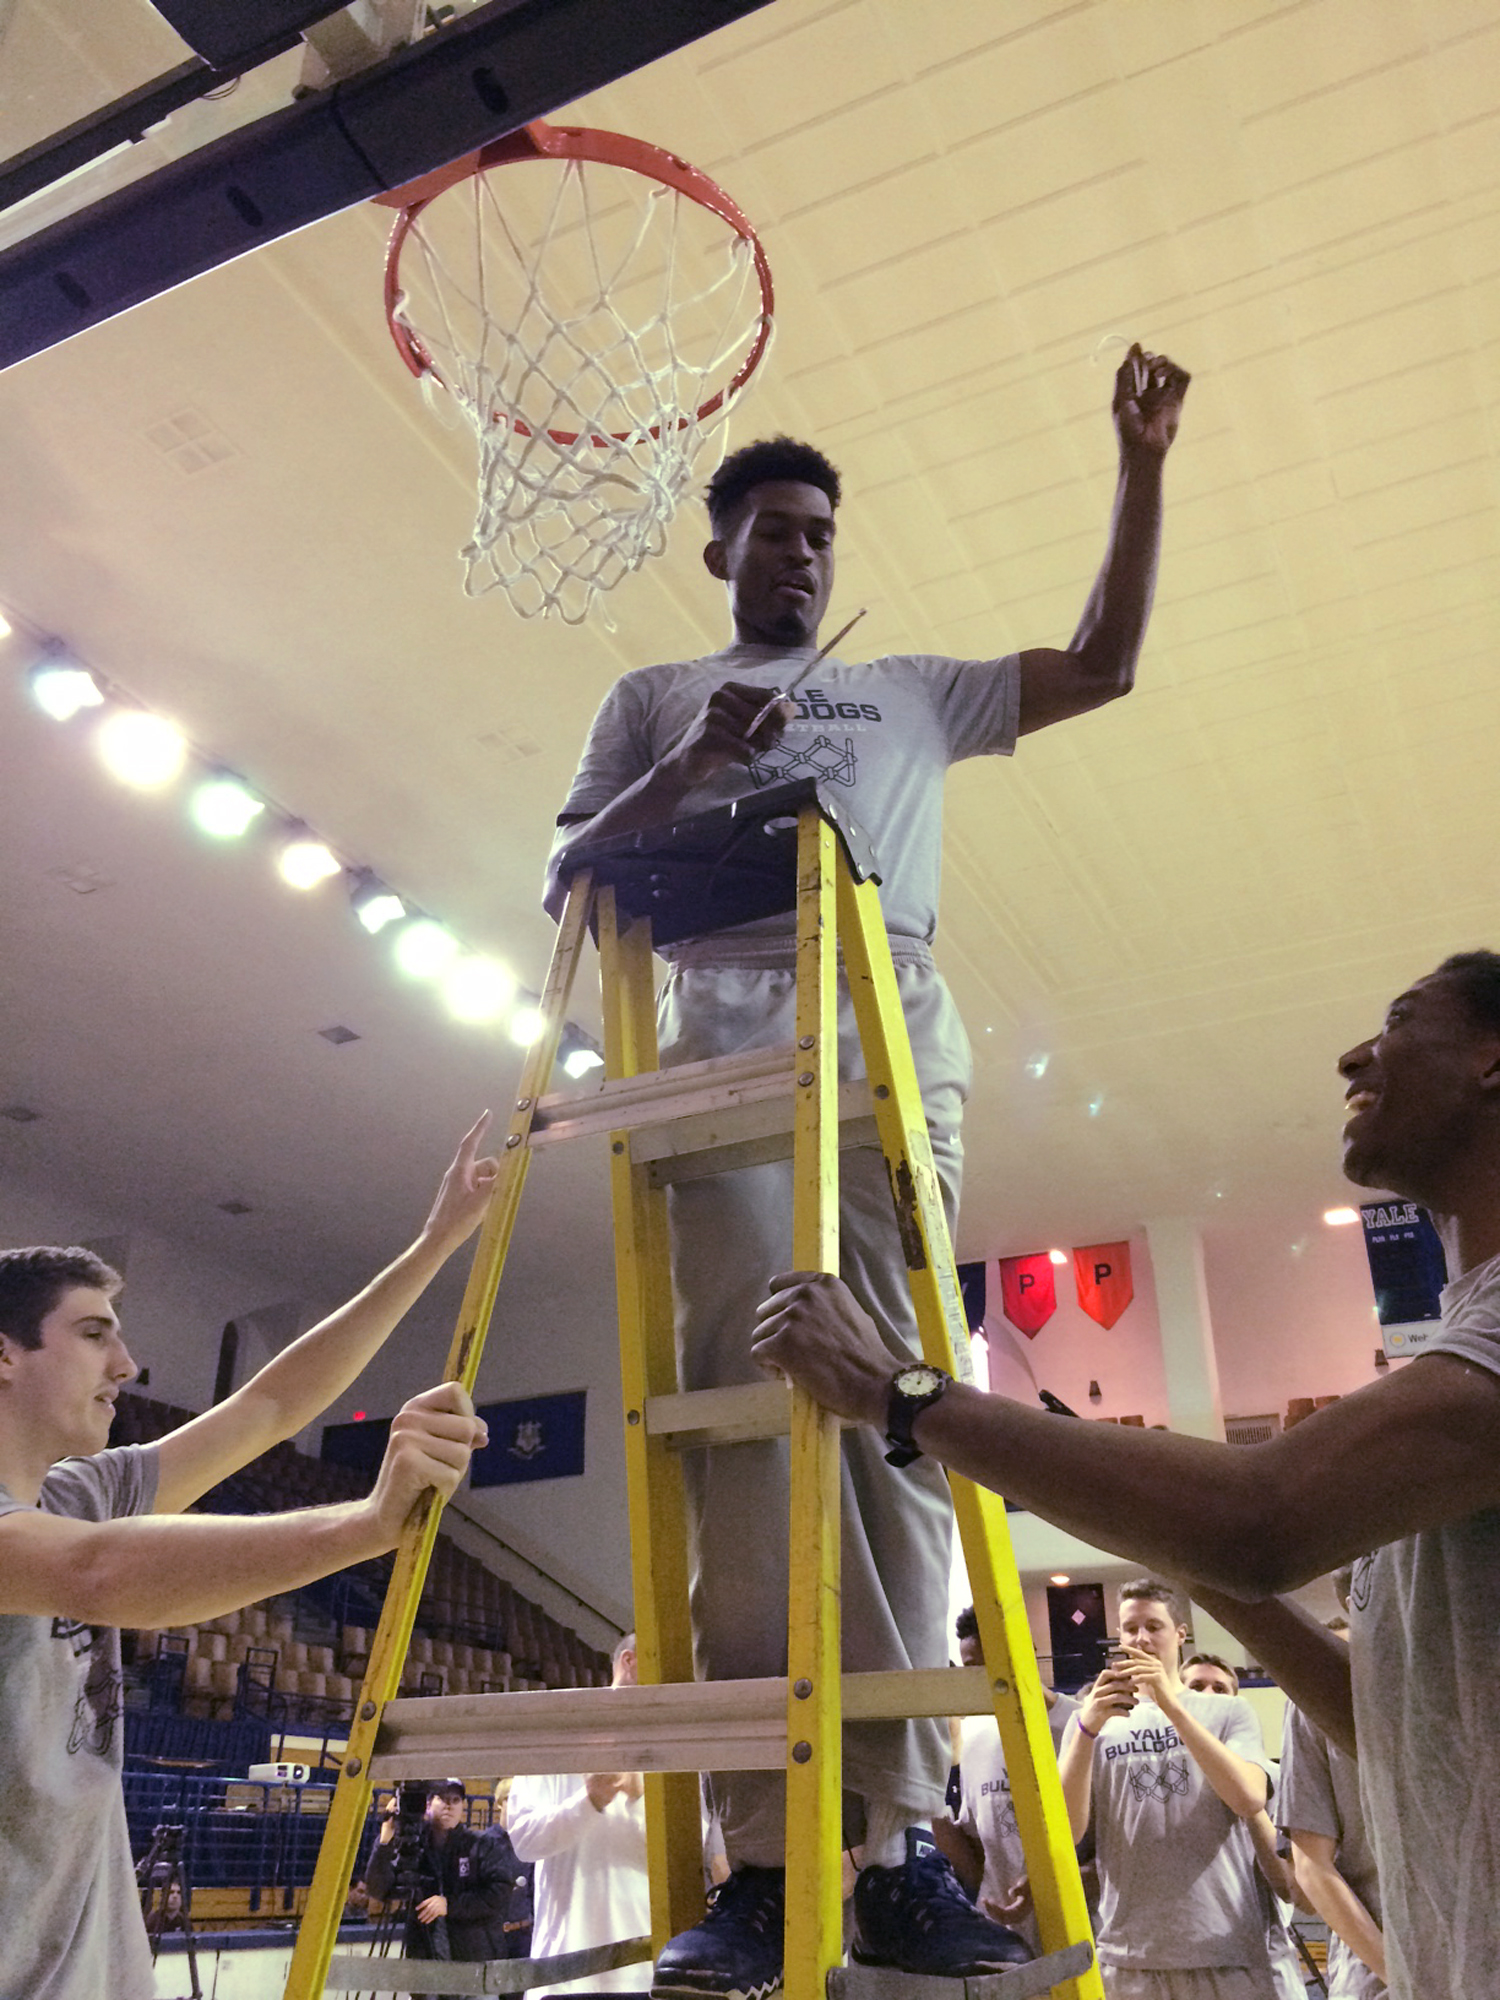 Brandon Sherrod helps cut down the net at Payne Whitney Gymnasium during Yale's tournament selection watch party in New Haven, Conn., Sunday, March 13, 2016. Yale has opened up the gym to the public and set up a movie screen at center court for fans to wa